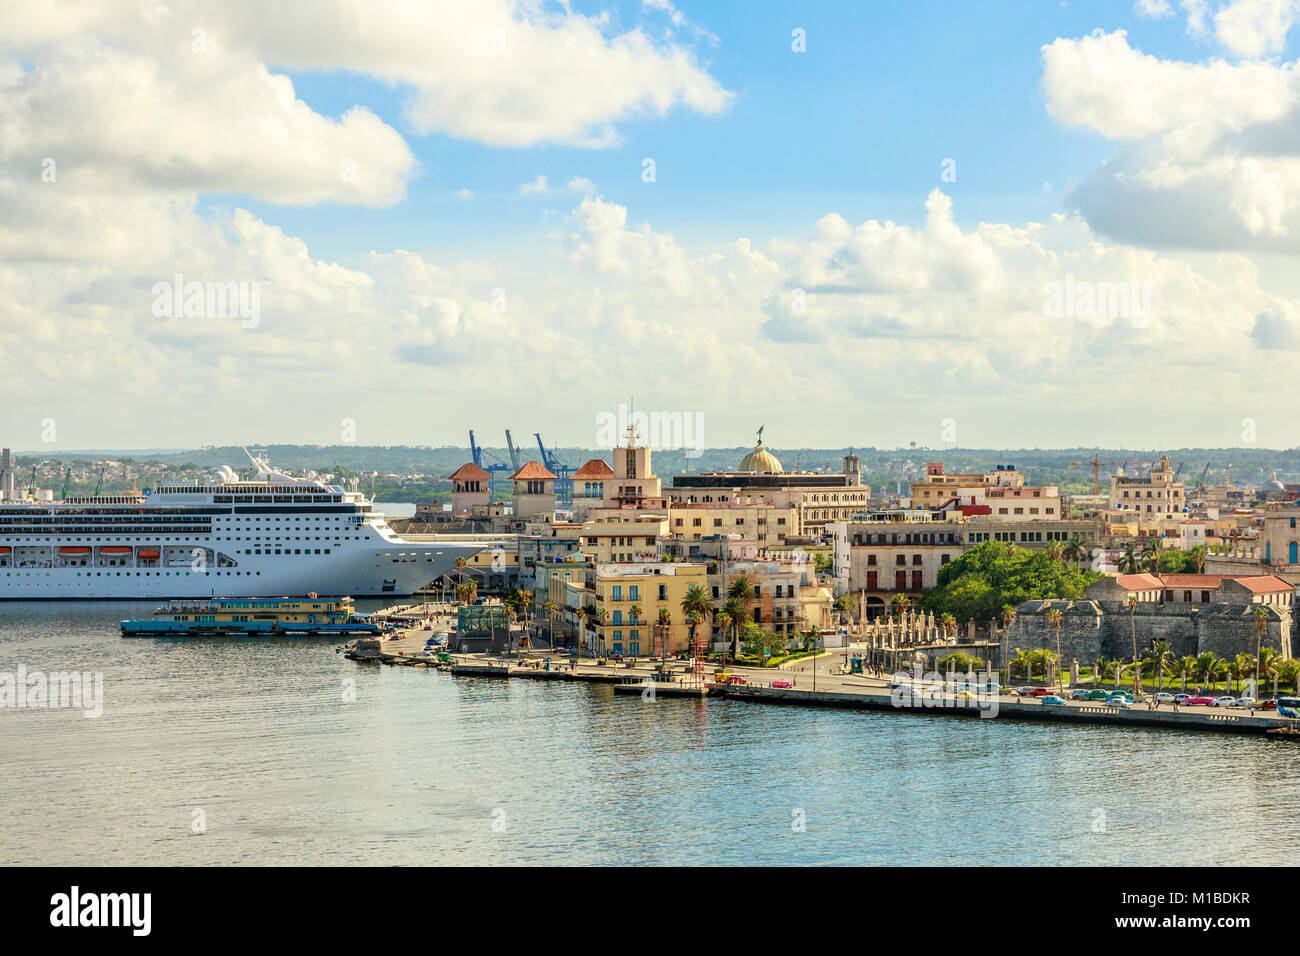 City panorama and big cruise ship docked in port of Havana, Cuba - Stock Image